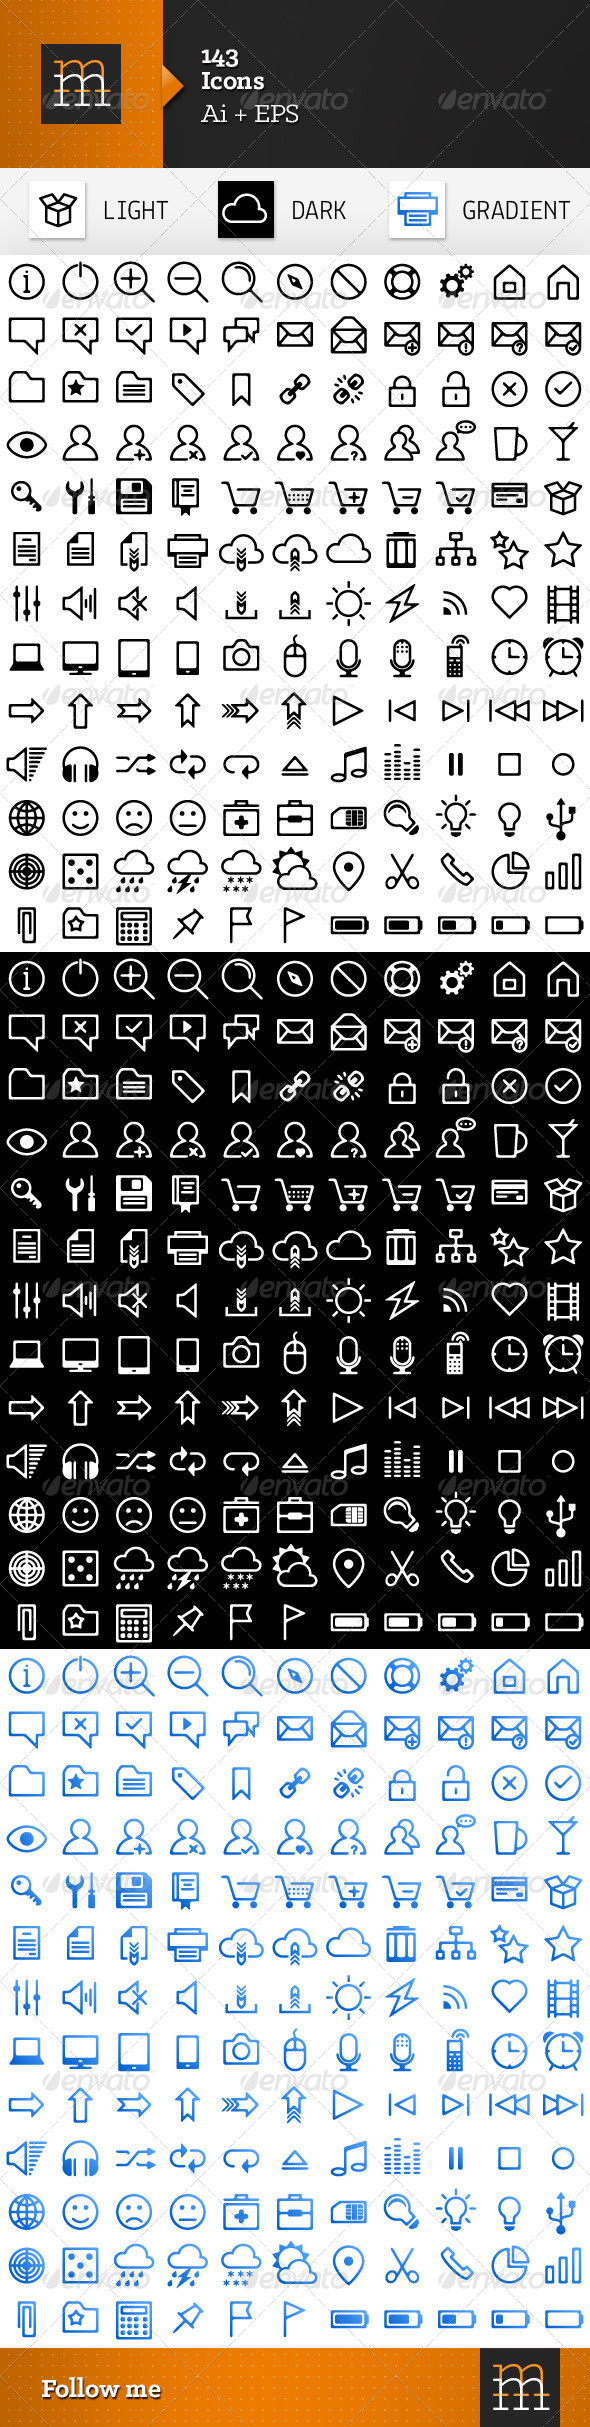 143 Vector Icons - Icons